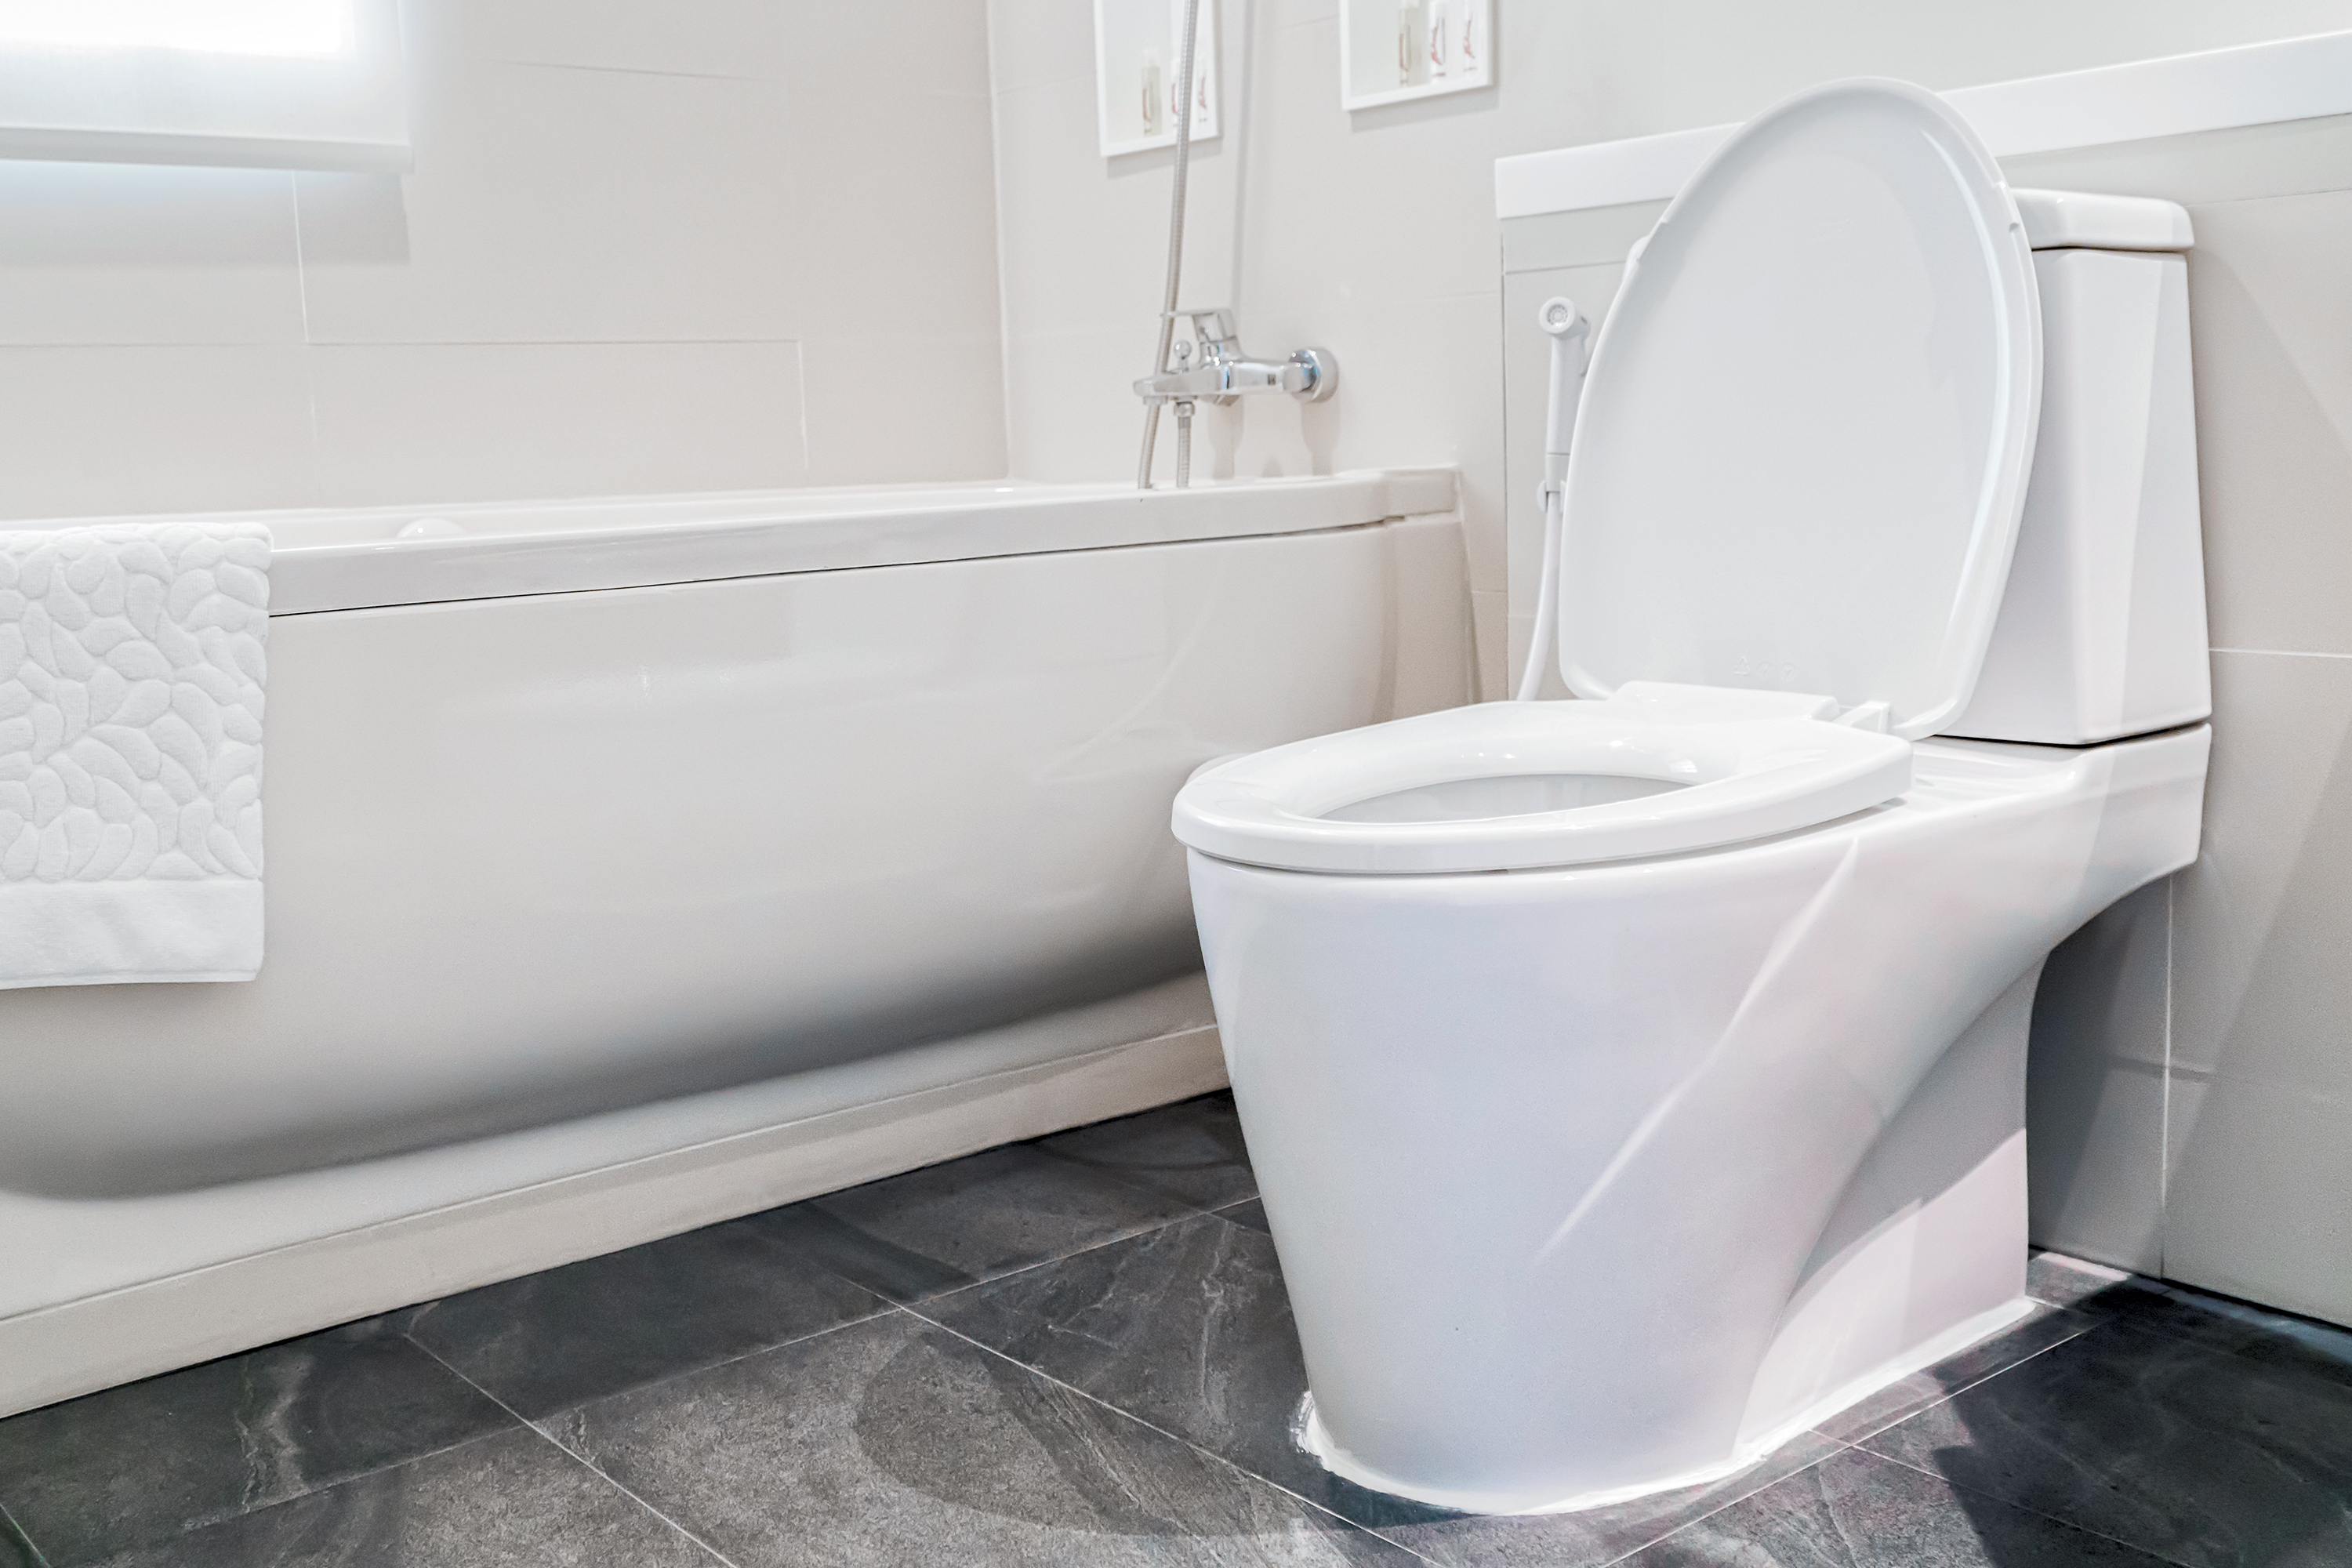 Toilet with lid up in a bright bathroom.